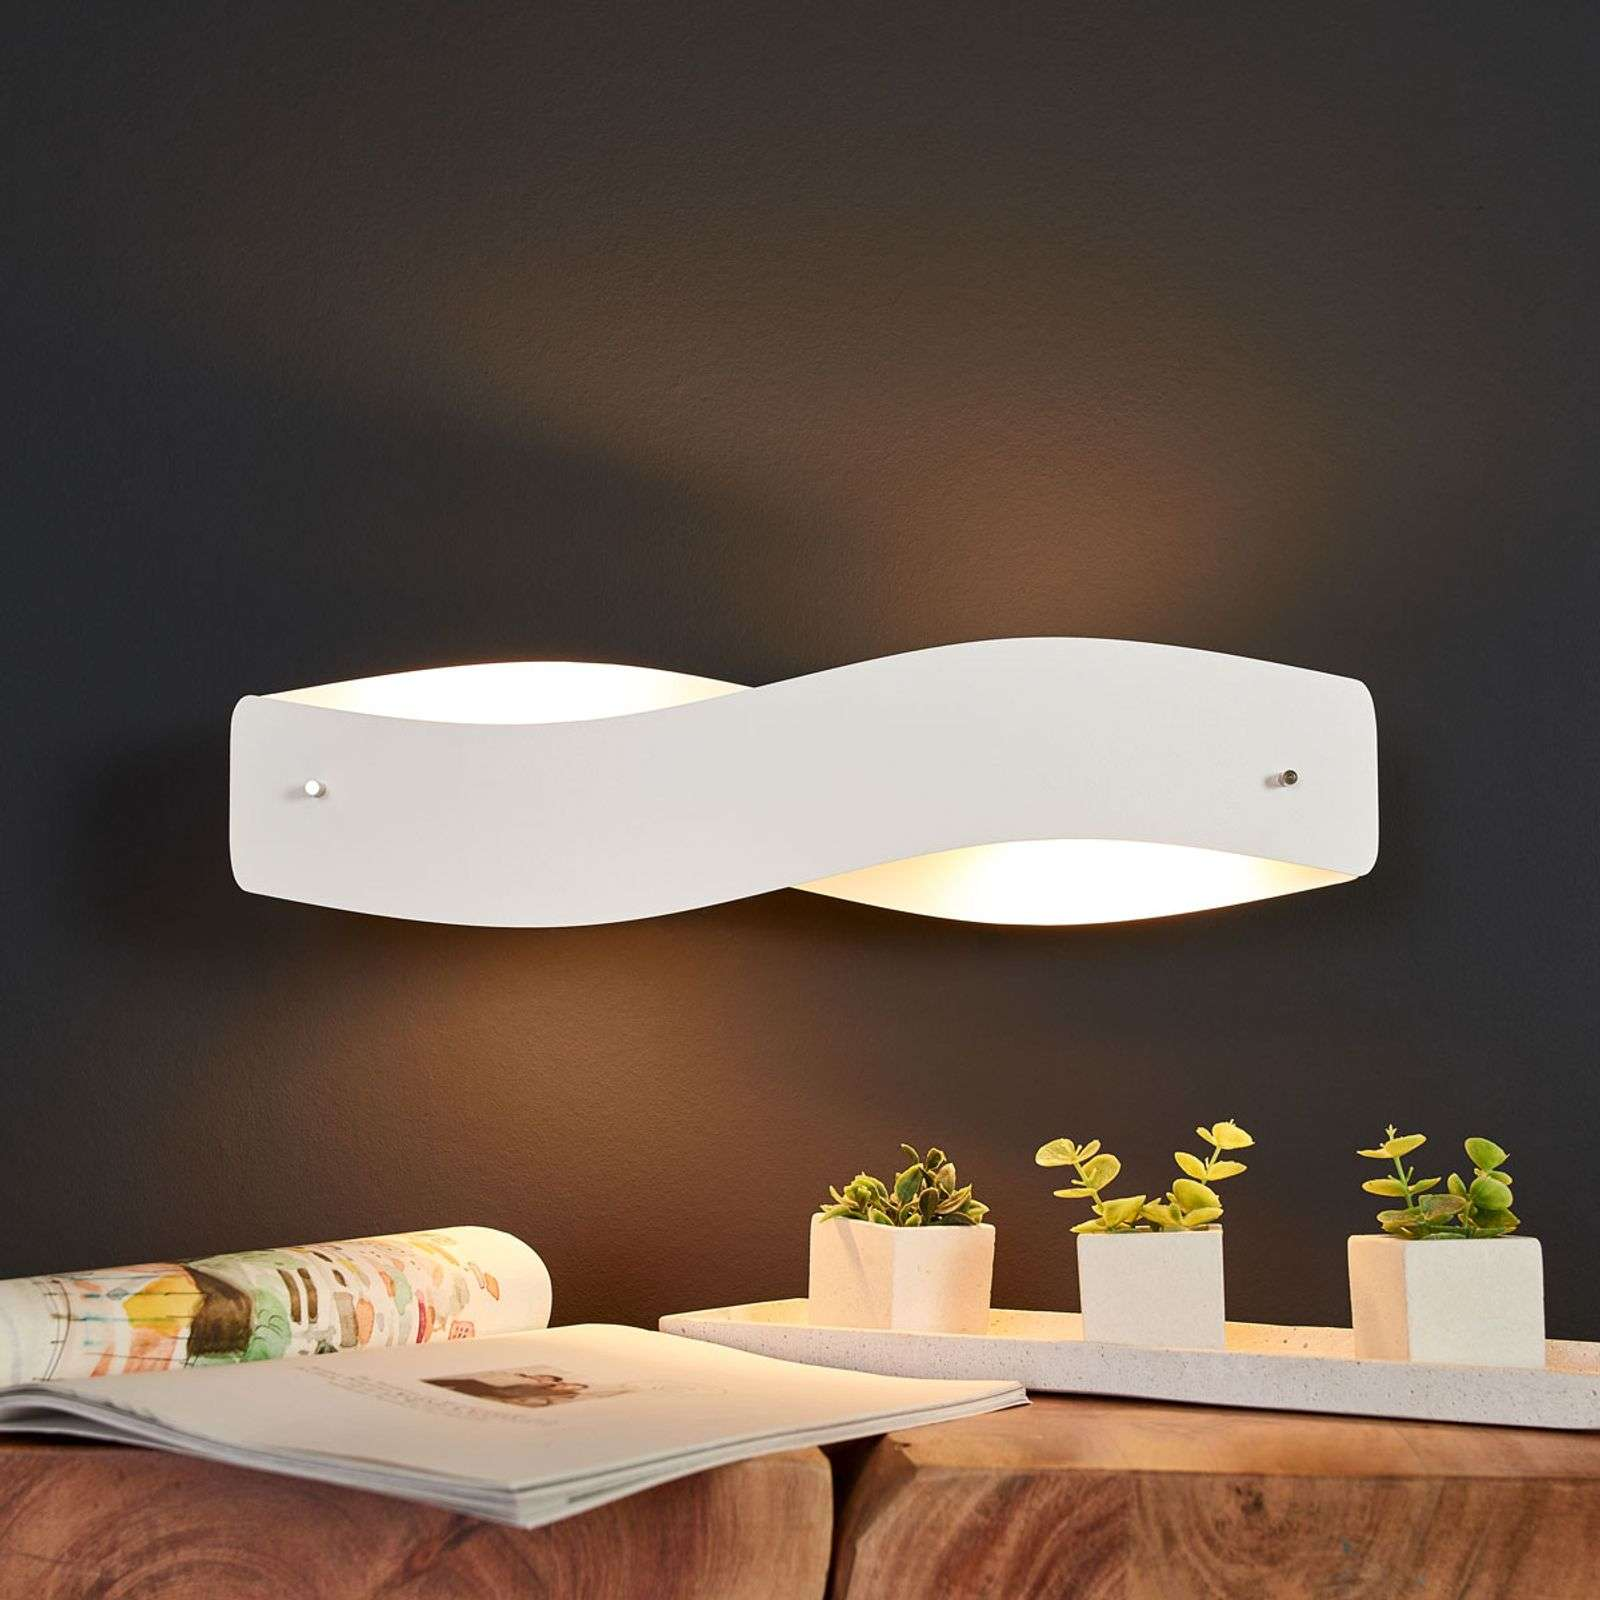 Aplique LED Lian blanco elegante, atenuable